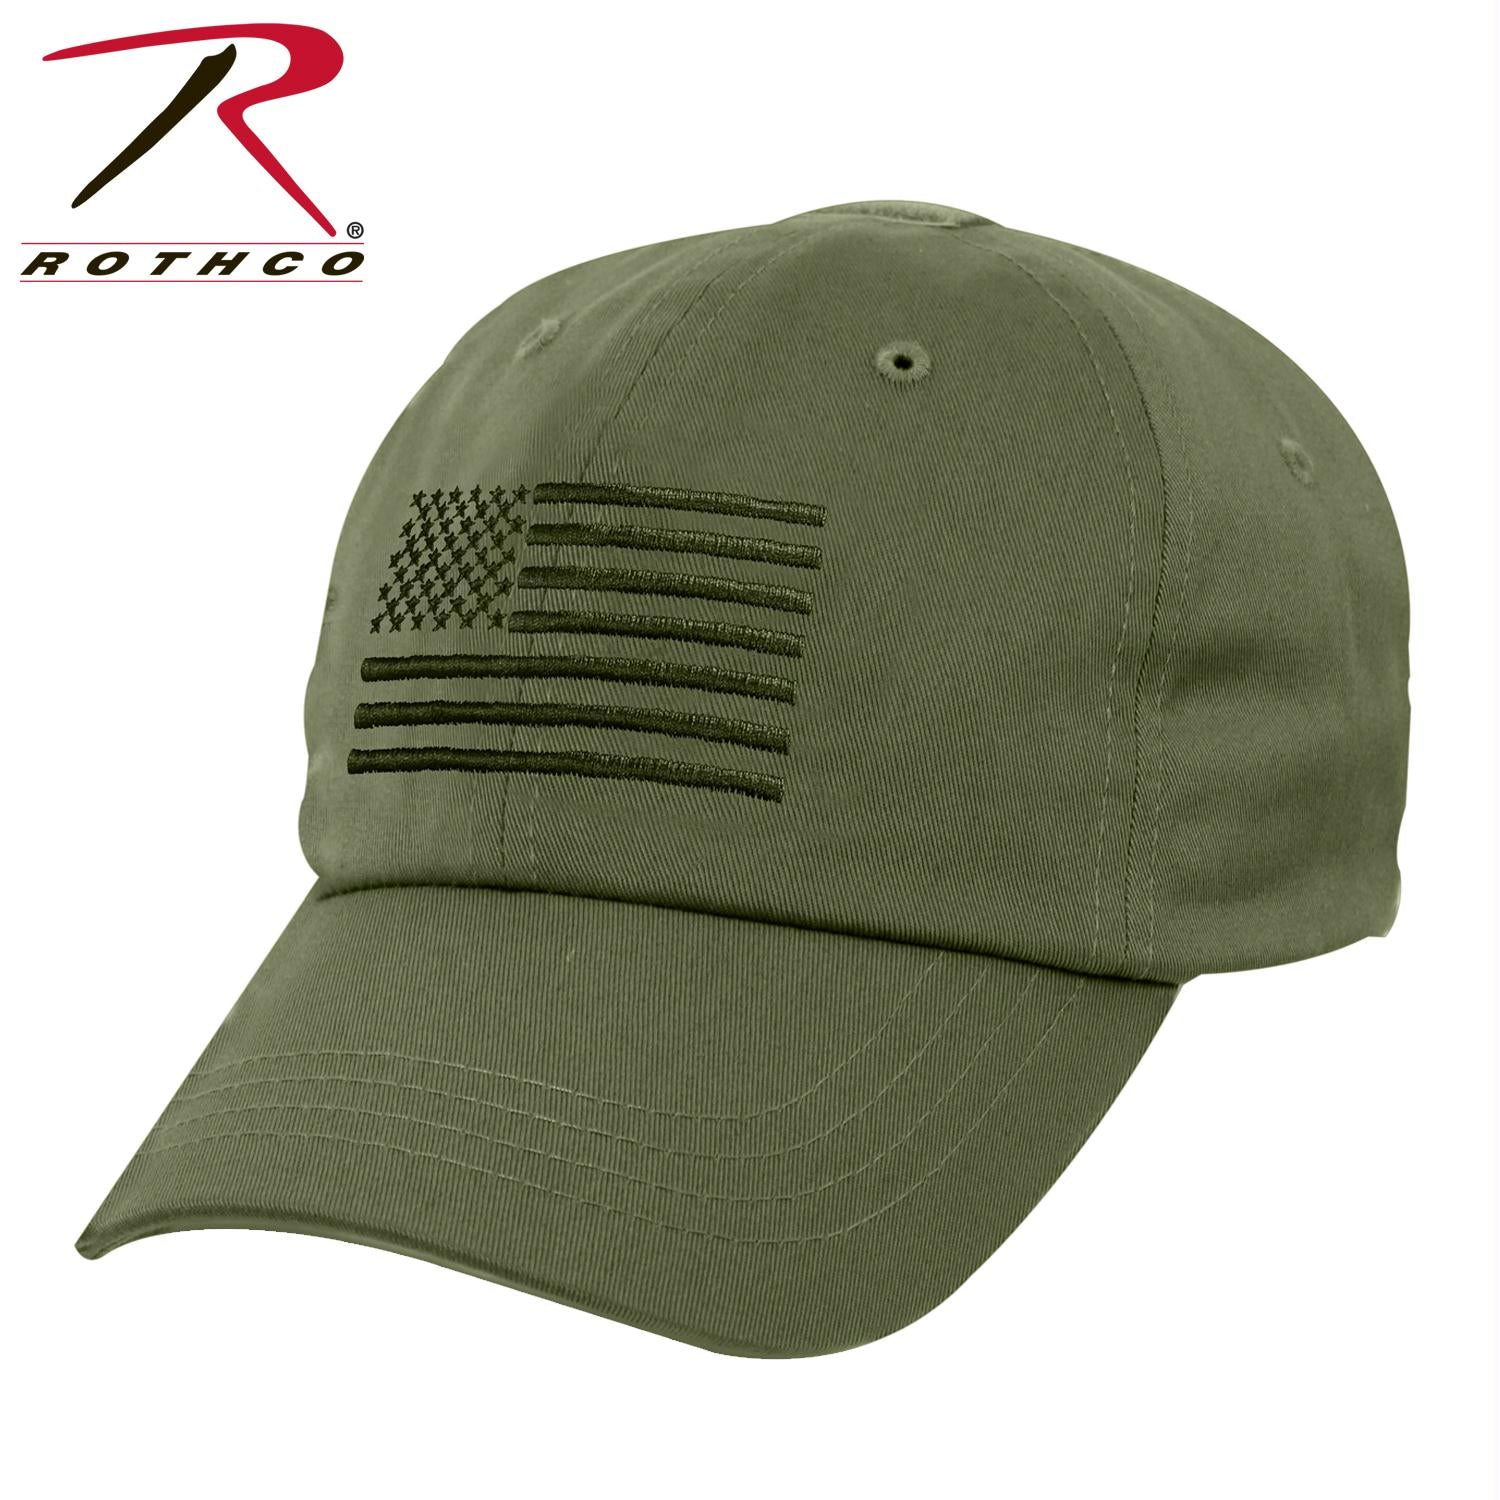 Rothco Tactical Operator Cap With US Flag - Olive Drab / One Size